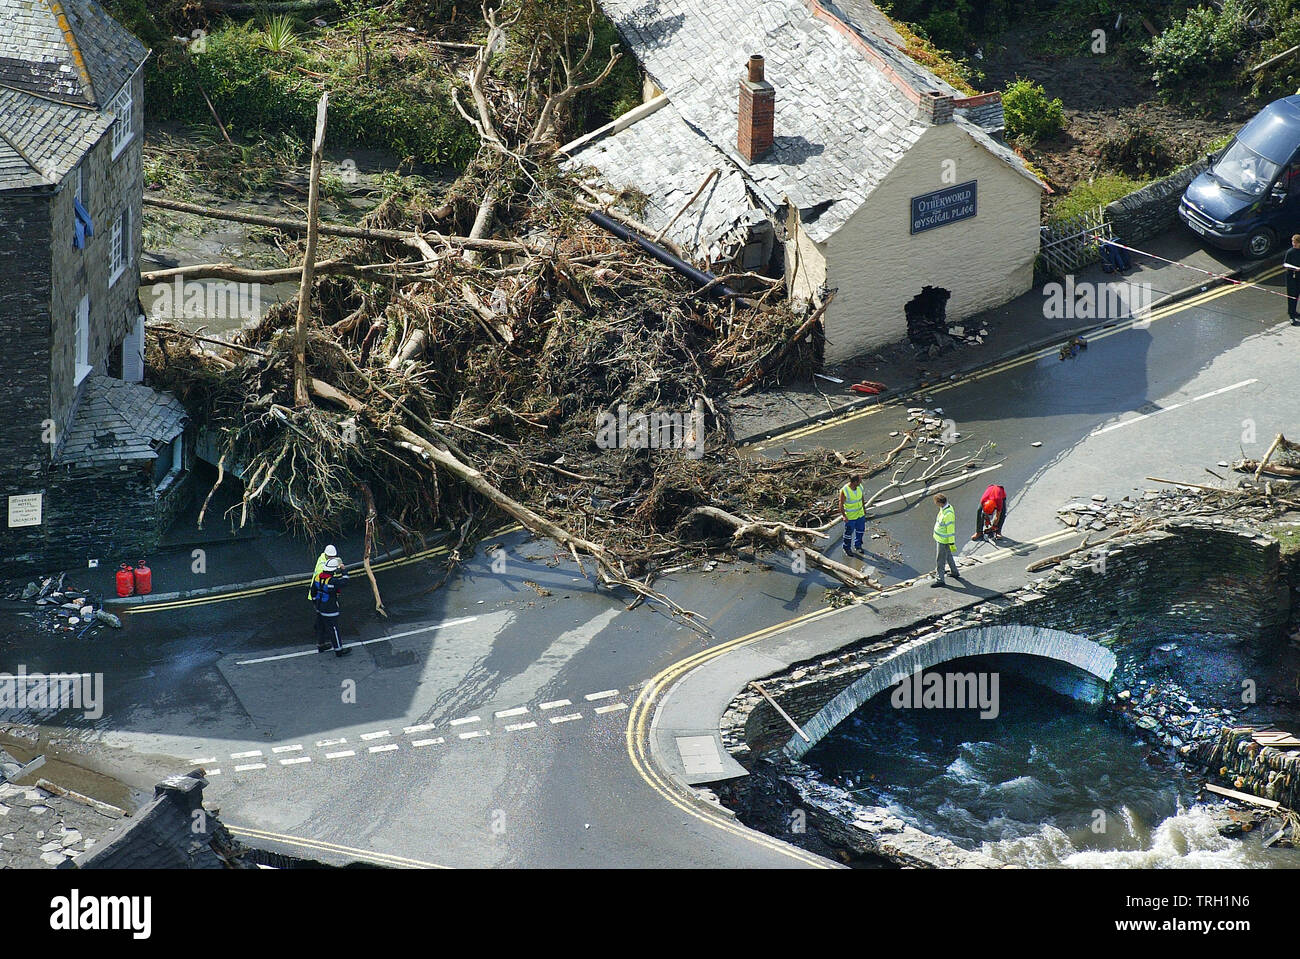 17.08.2004 - The scene at Boscastle in Cornwall, UK, this morning after yesterday's devastating flood. - Stock Image